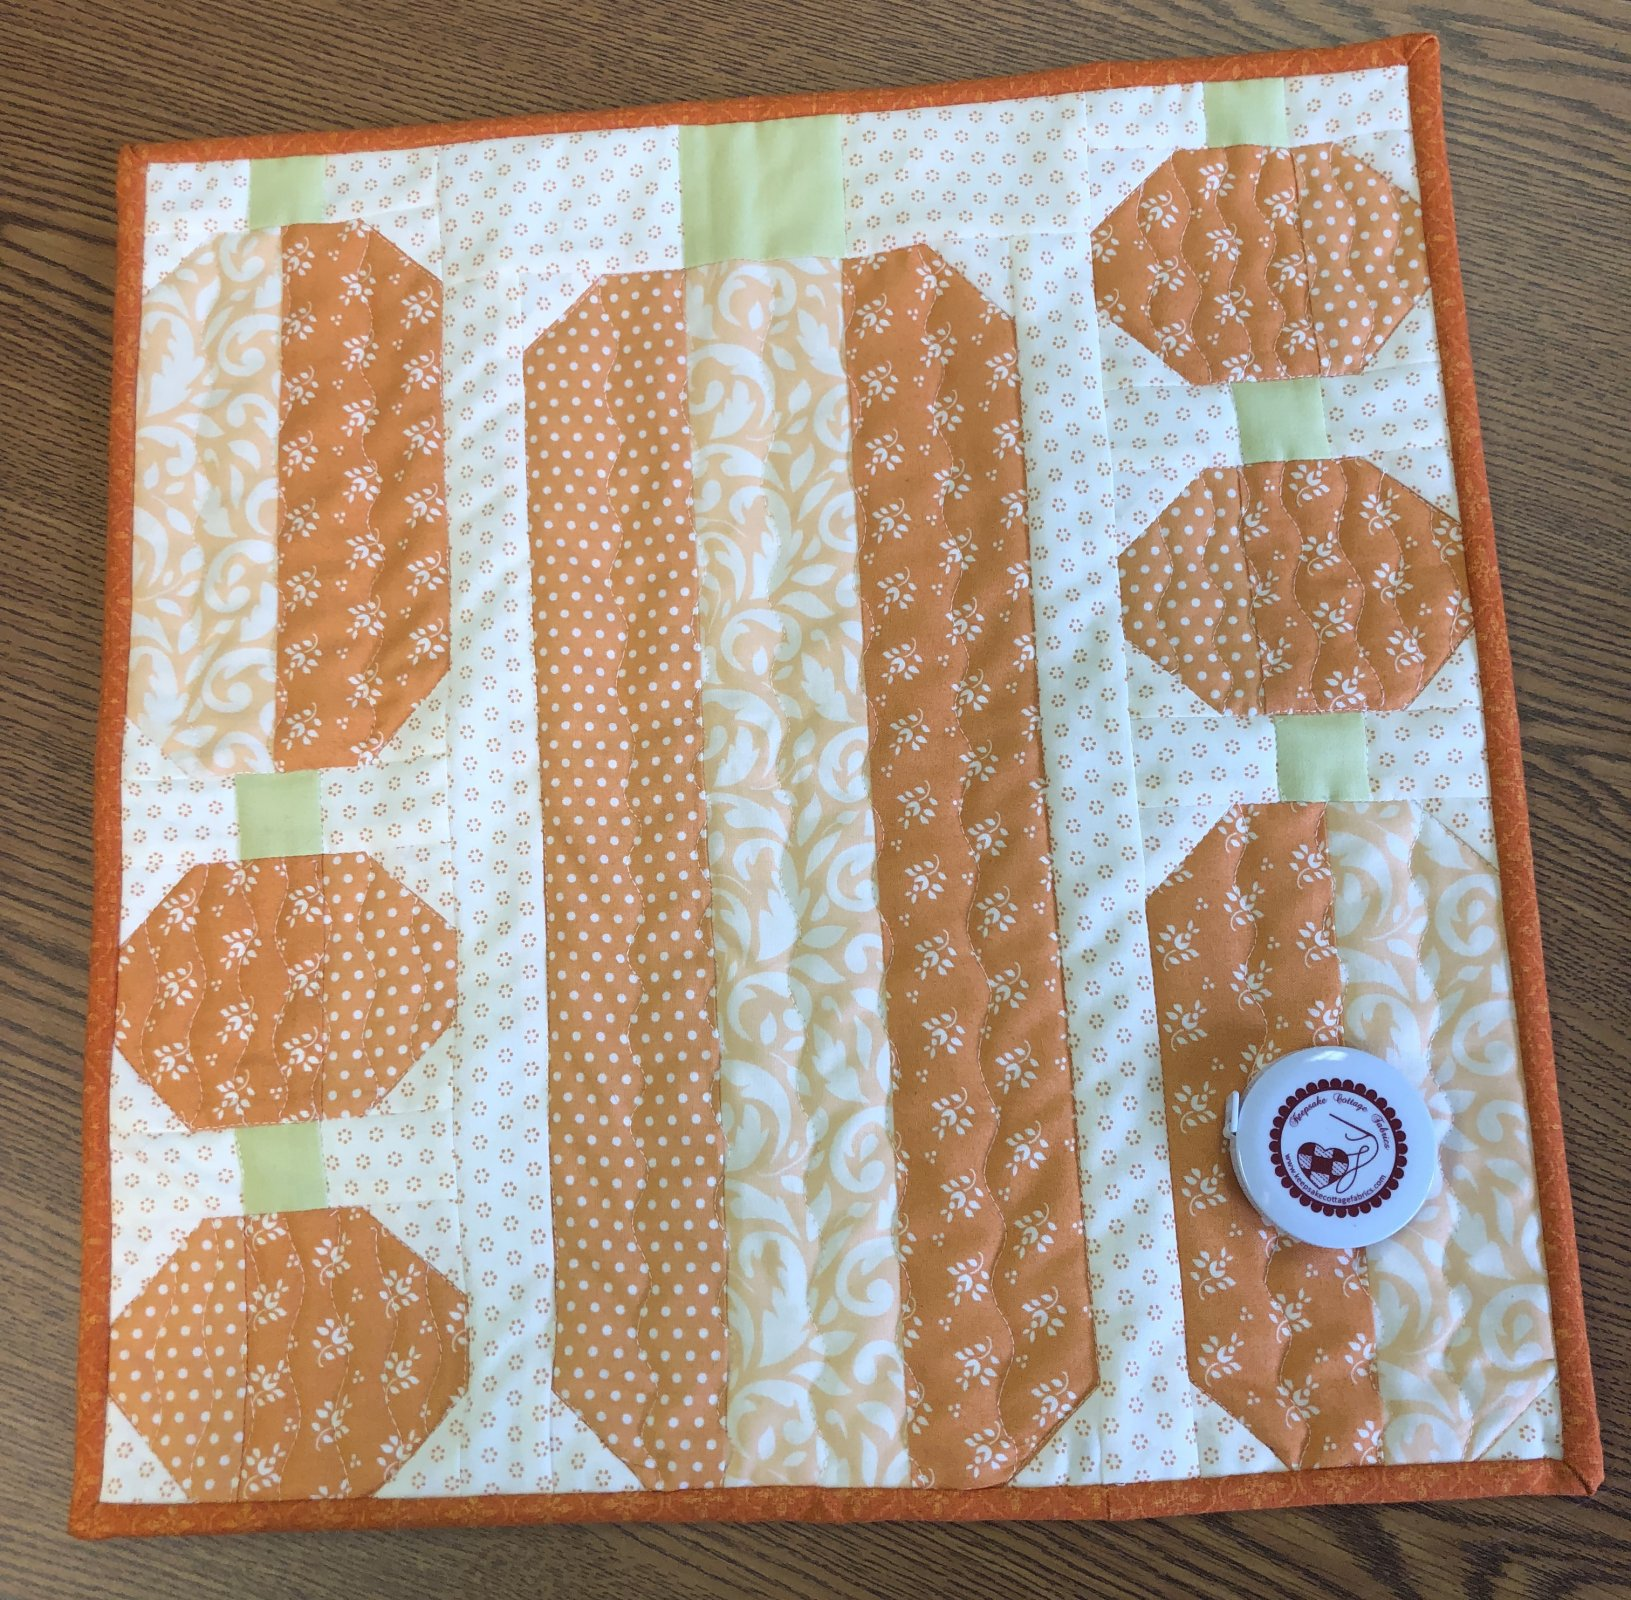 October Monthly Mini Quilt Kit #1